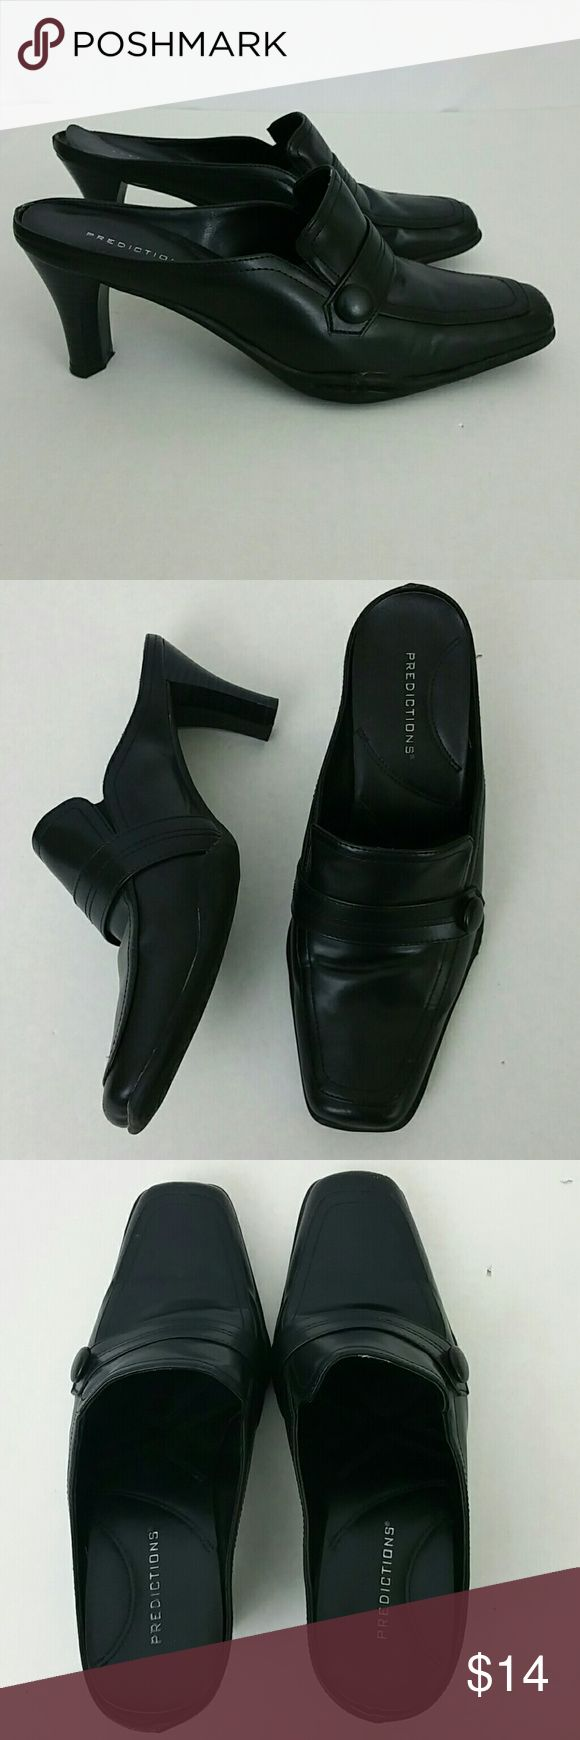 Predictions Womens Mules Square Toe Black Size 7W Predictions Womens Mules Square Toe Black Size 7W Slip On  Very Little Signs of Use Except Back Of Lining in Shoes Needs to be Tacked Down Lifting Please Examine Photos. Predictions  Shoes Mules & Clogs